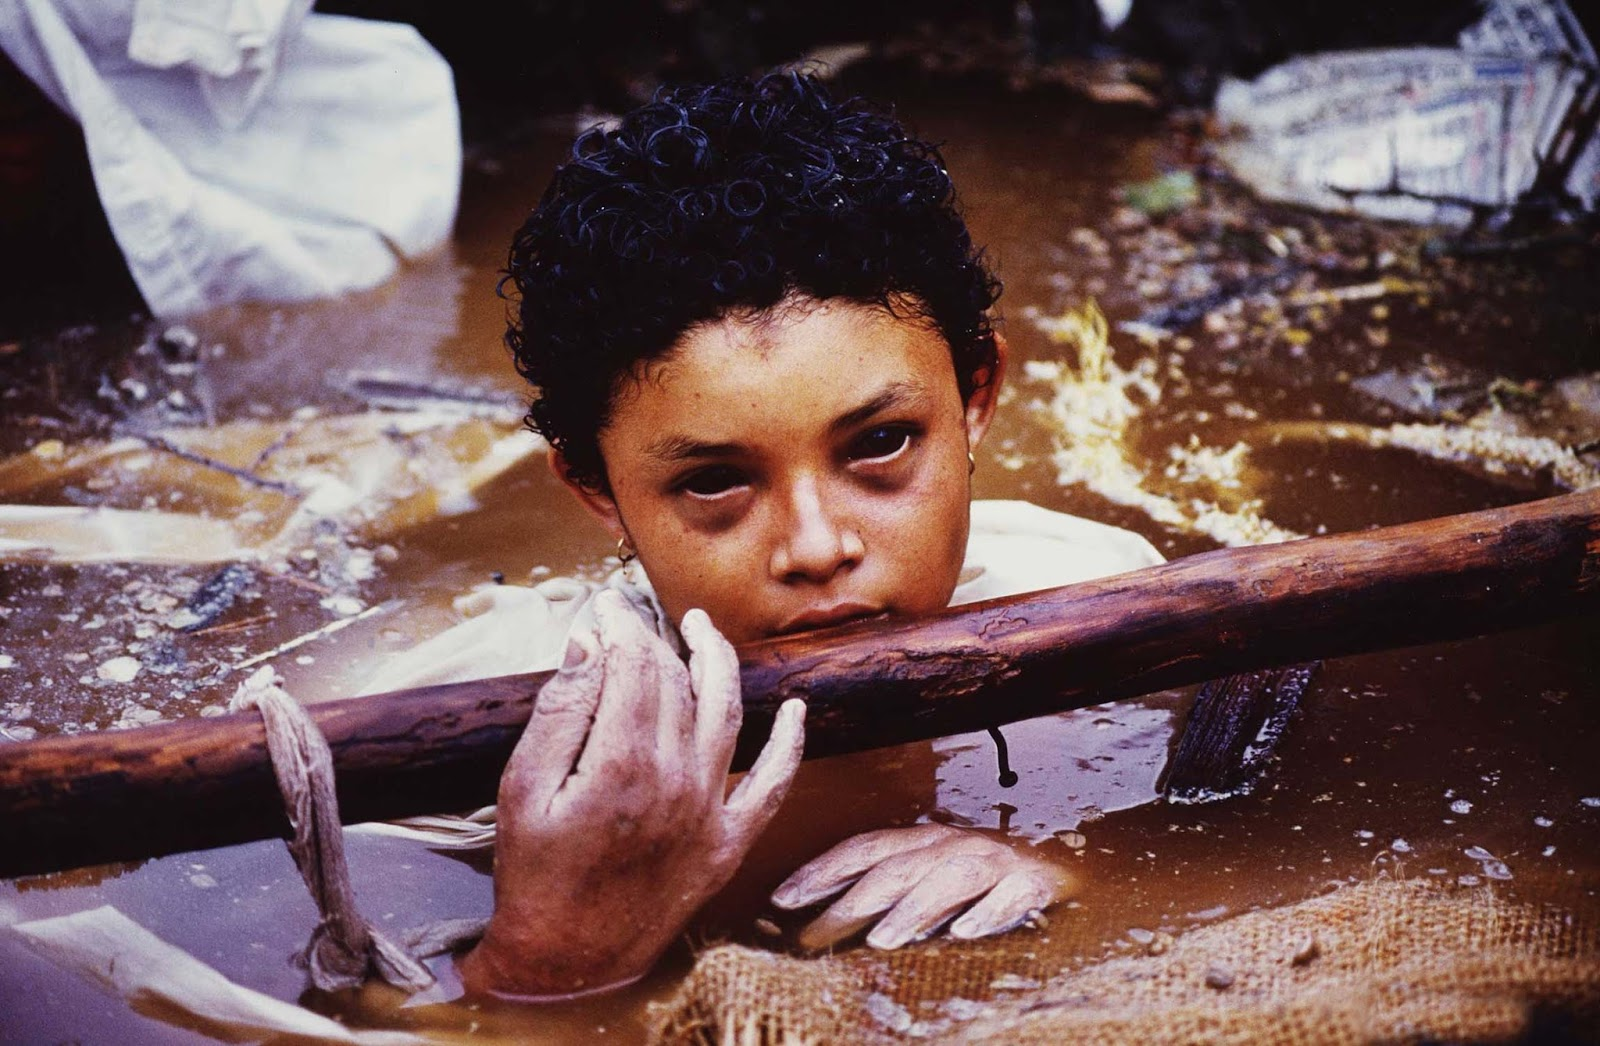 A victim of a Colombian volcano disaster, Omayra Sanchez was trapped in water and concrete for three days. This photo was taken shortly before she died.